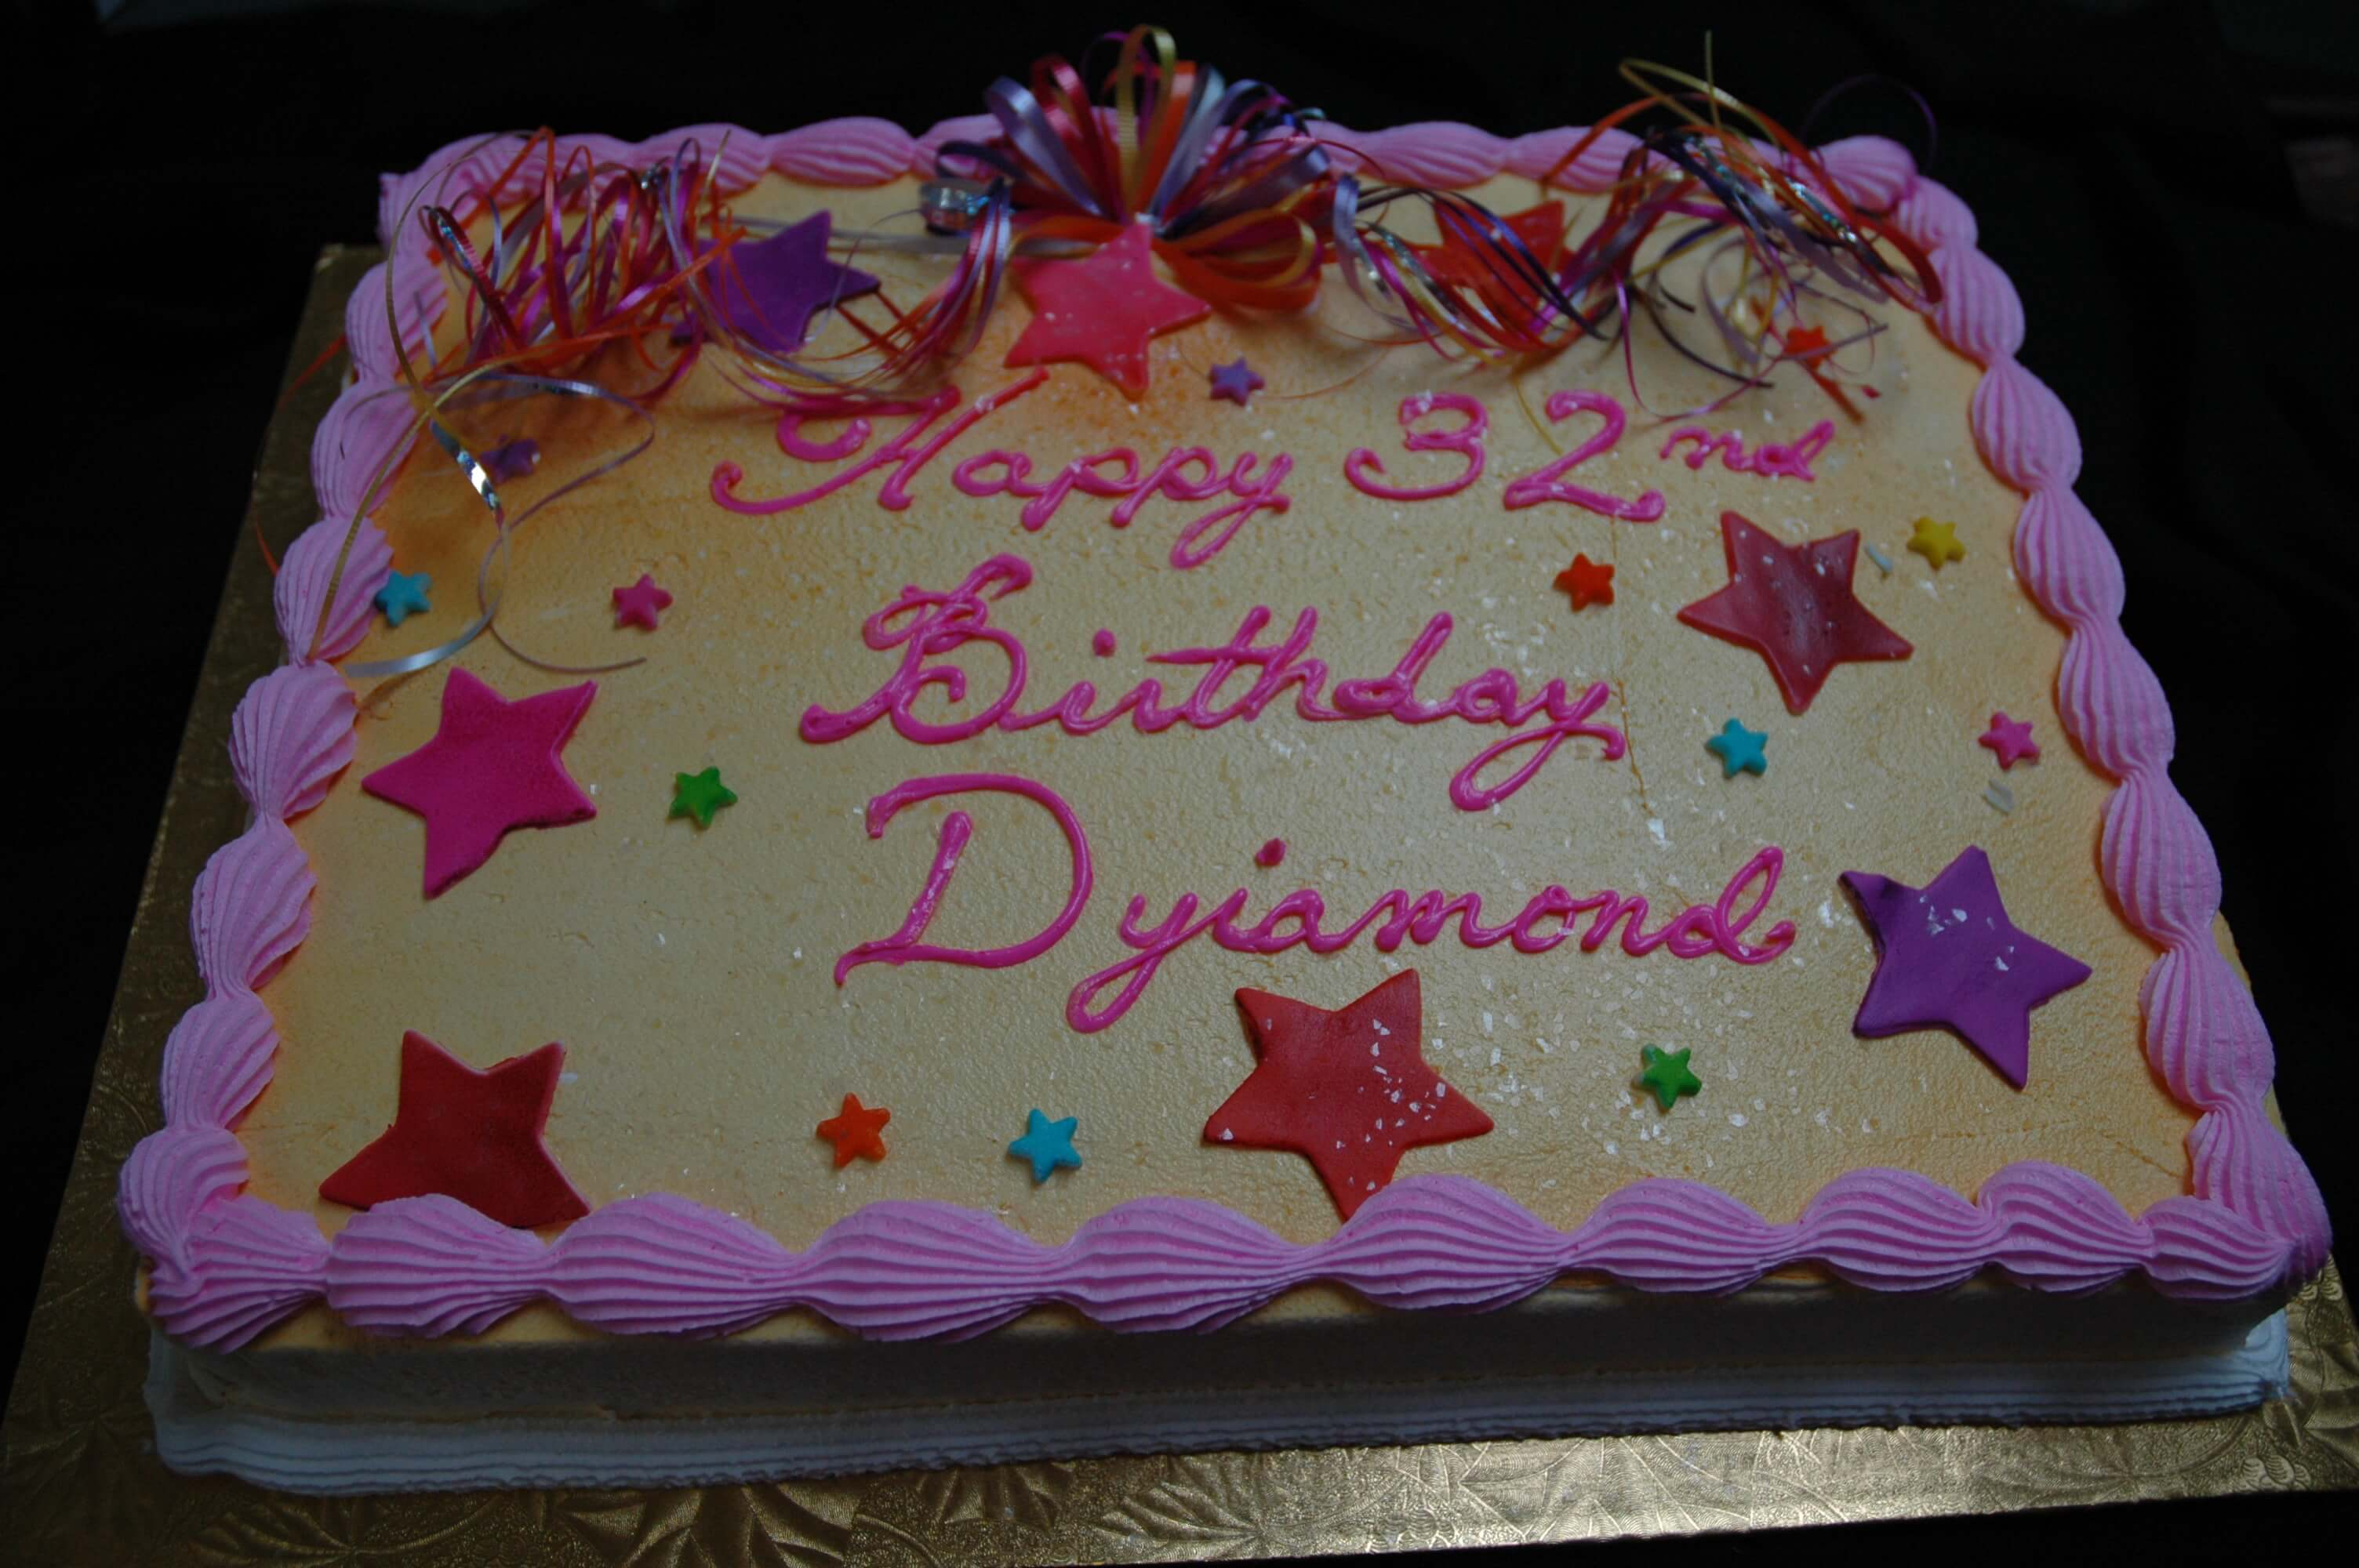 McArthur's Bakery Custom Cake with Stars and Ribbons